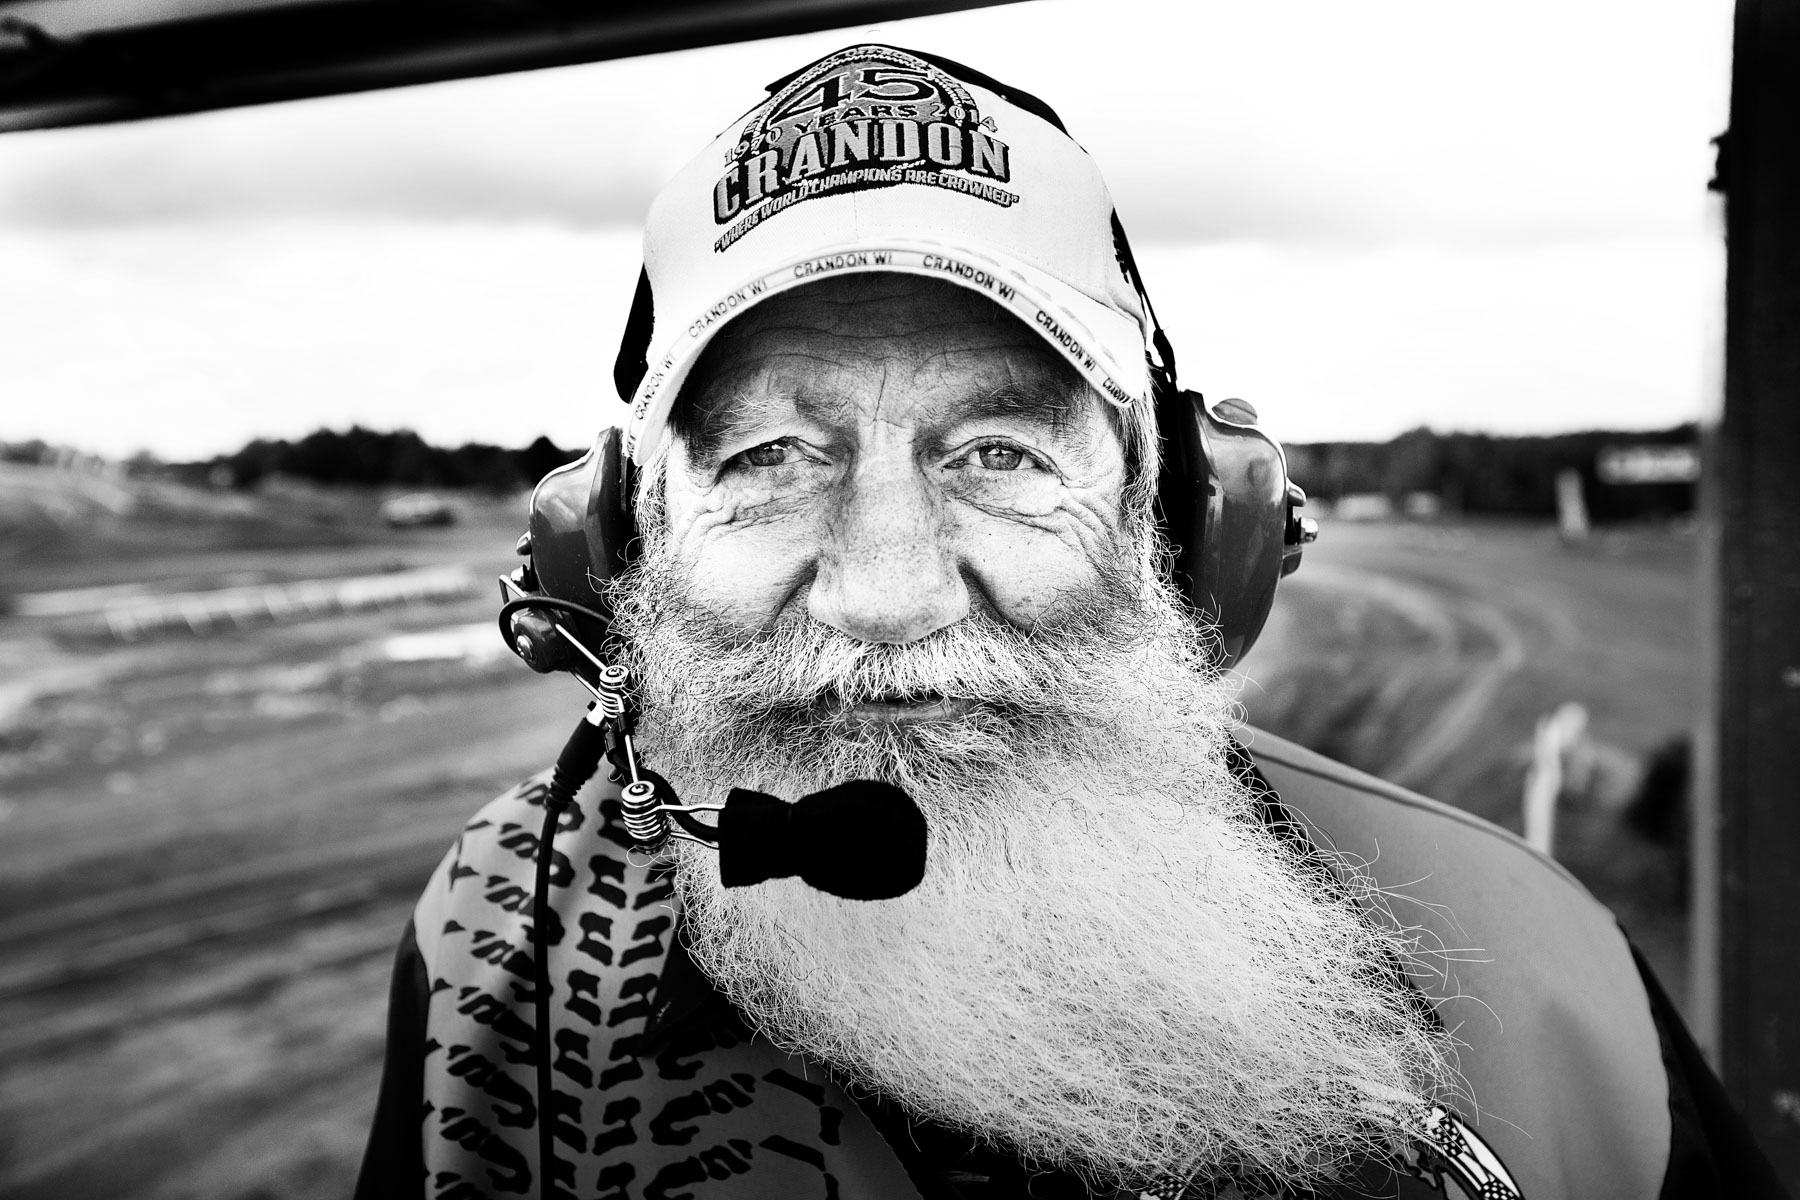 Crandon Offroad by Boston based commercial portrait photographer Brian Nevins